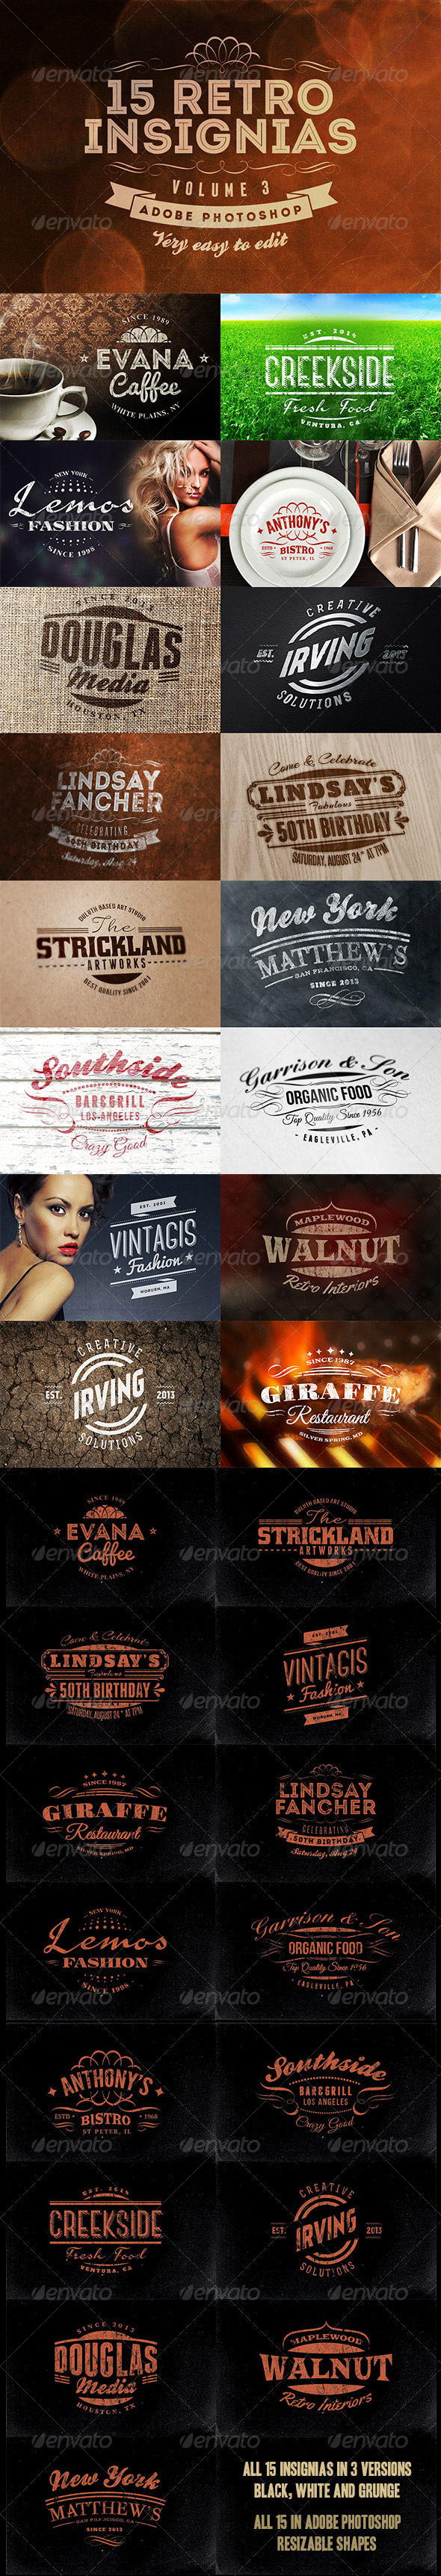 GraphicRiver 15 Retro Insignias Badges v.3 5774623